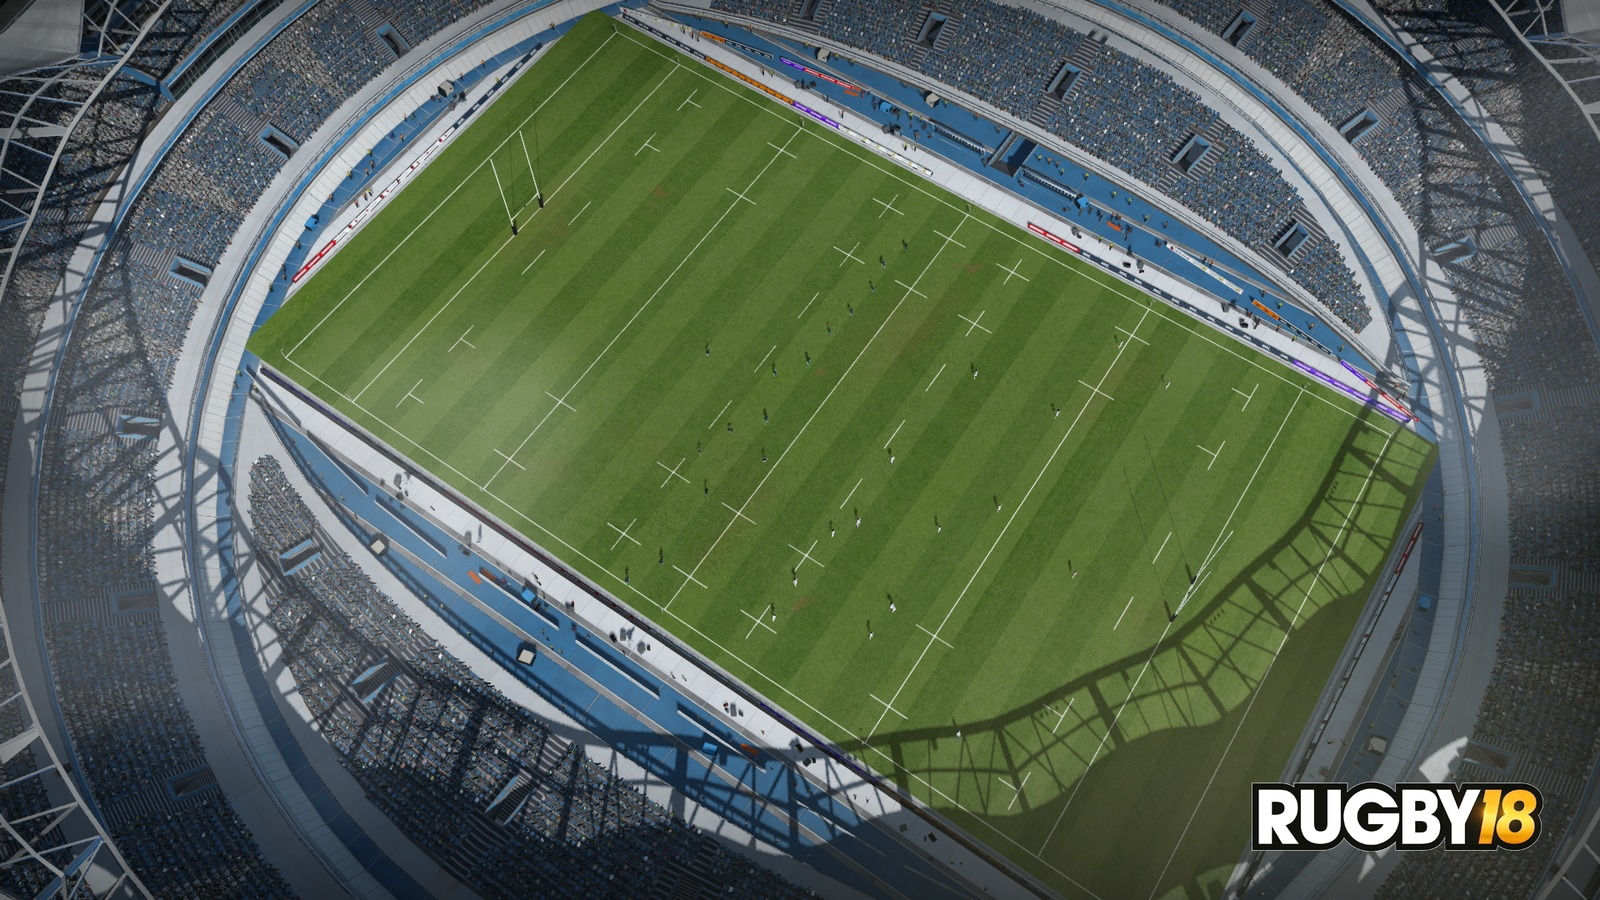 Rugby 18 for Xbox One image